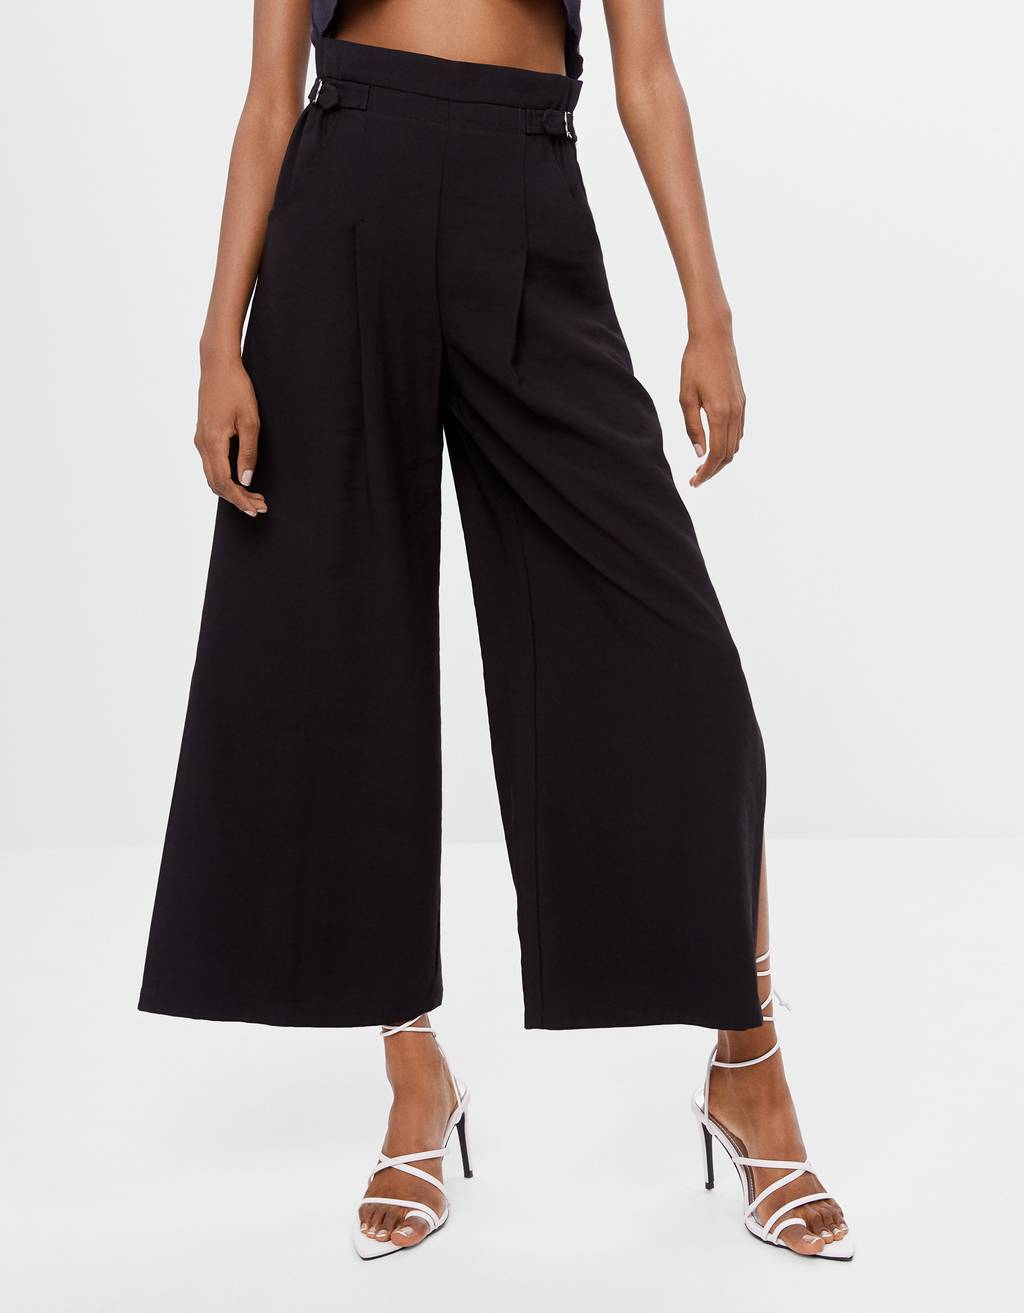 Culottes with buckles